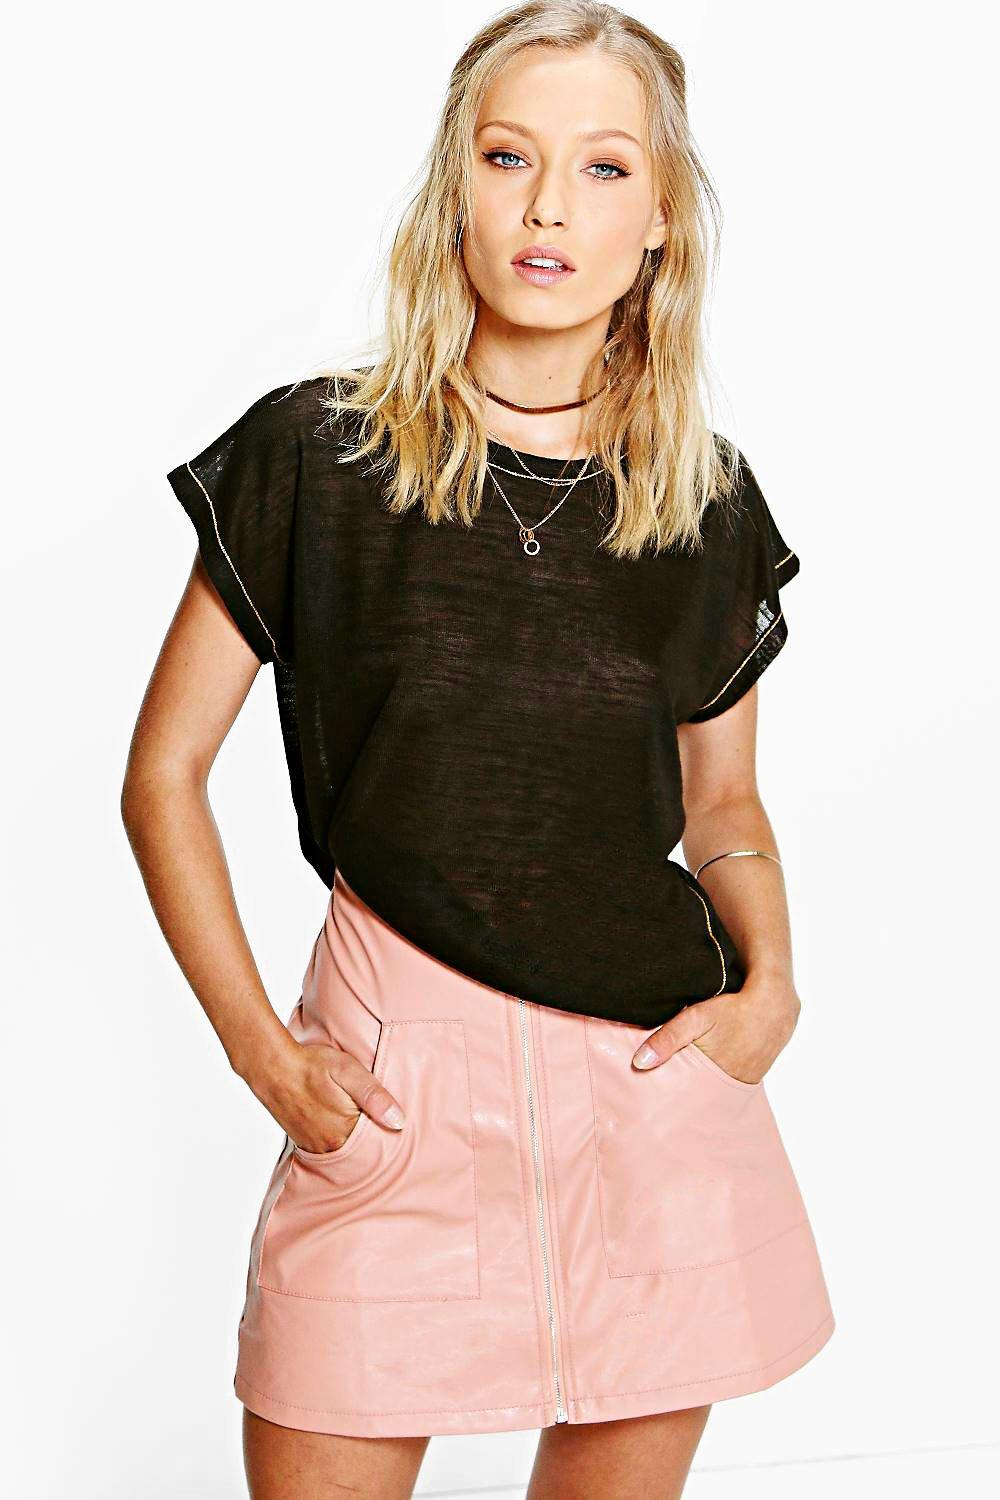 Lacey Premium Contrast Stitch Oversized Tee